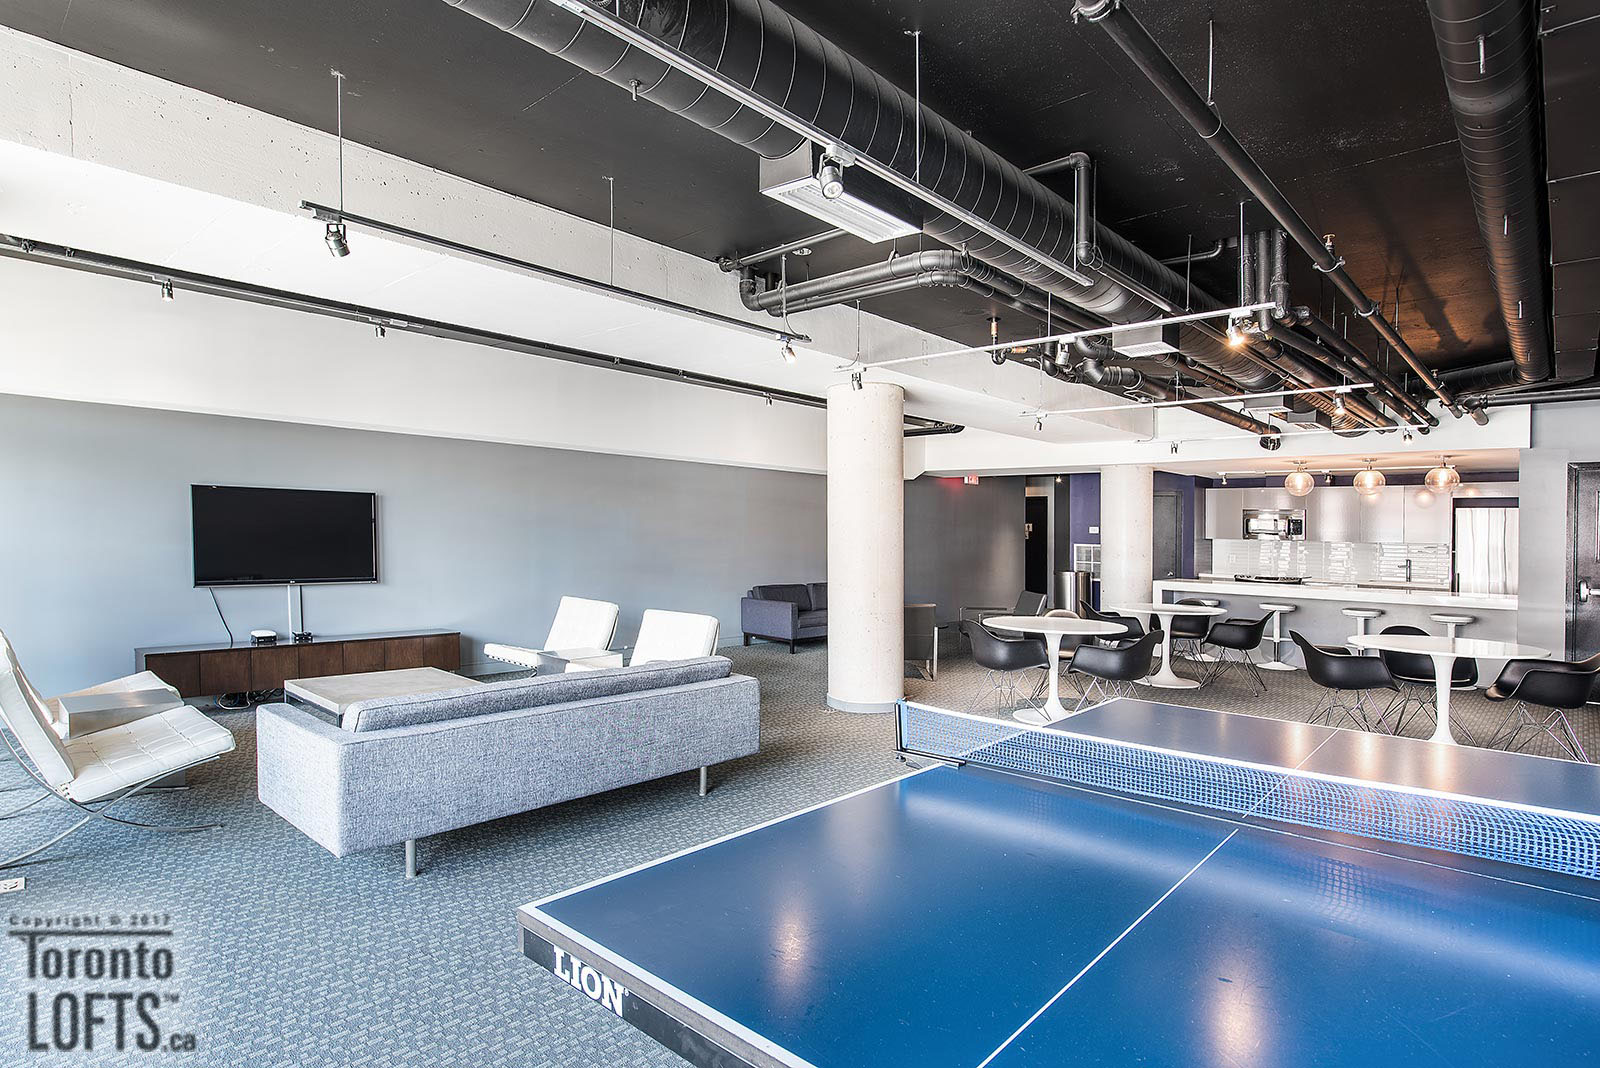 Work Lofts-319-321 Carlaw Ave #407